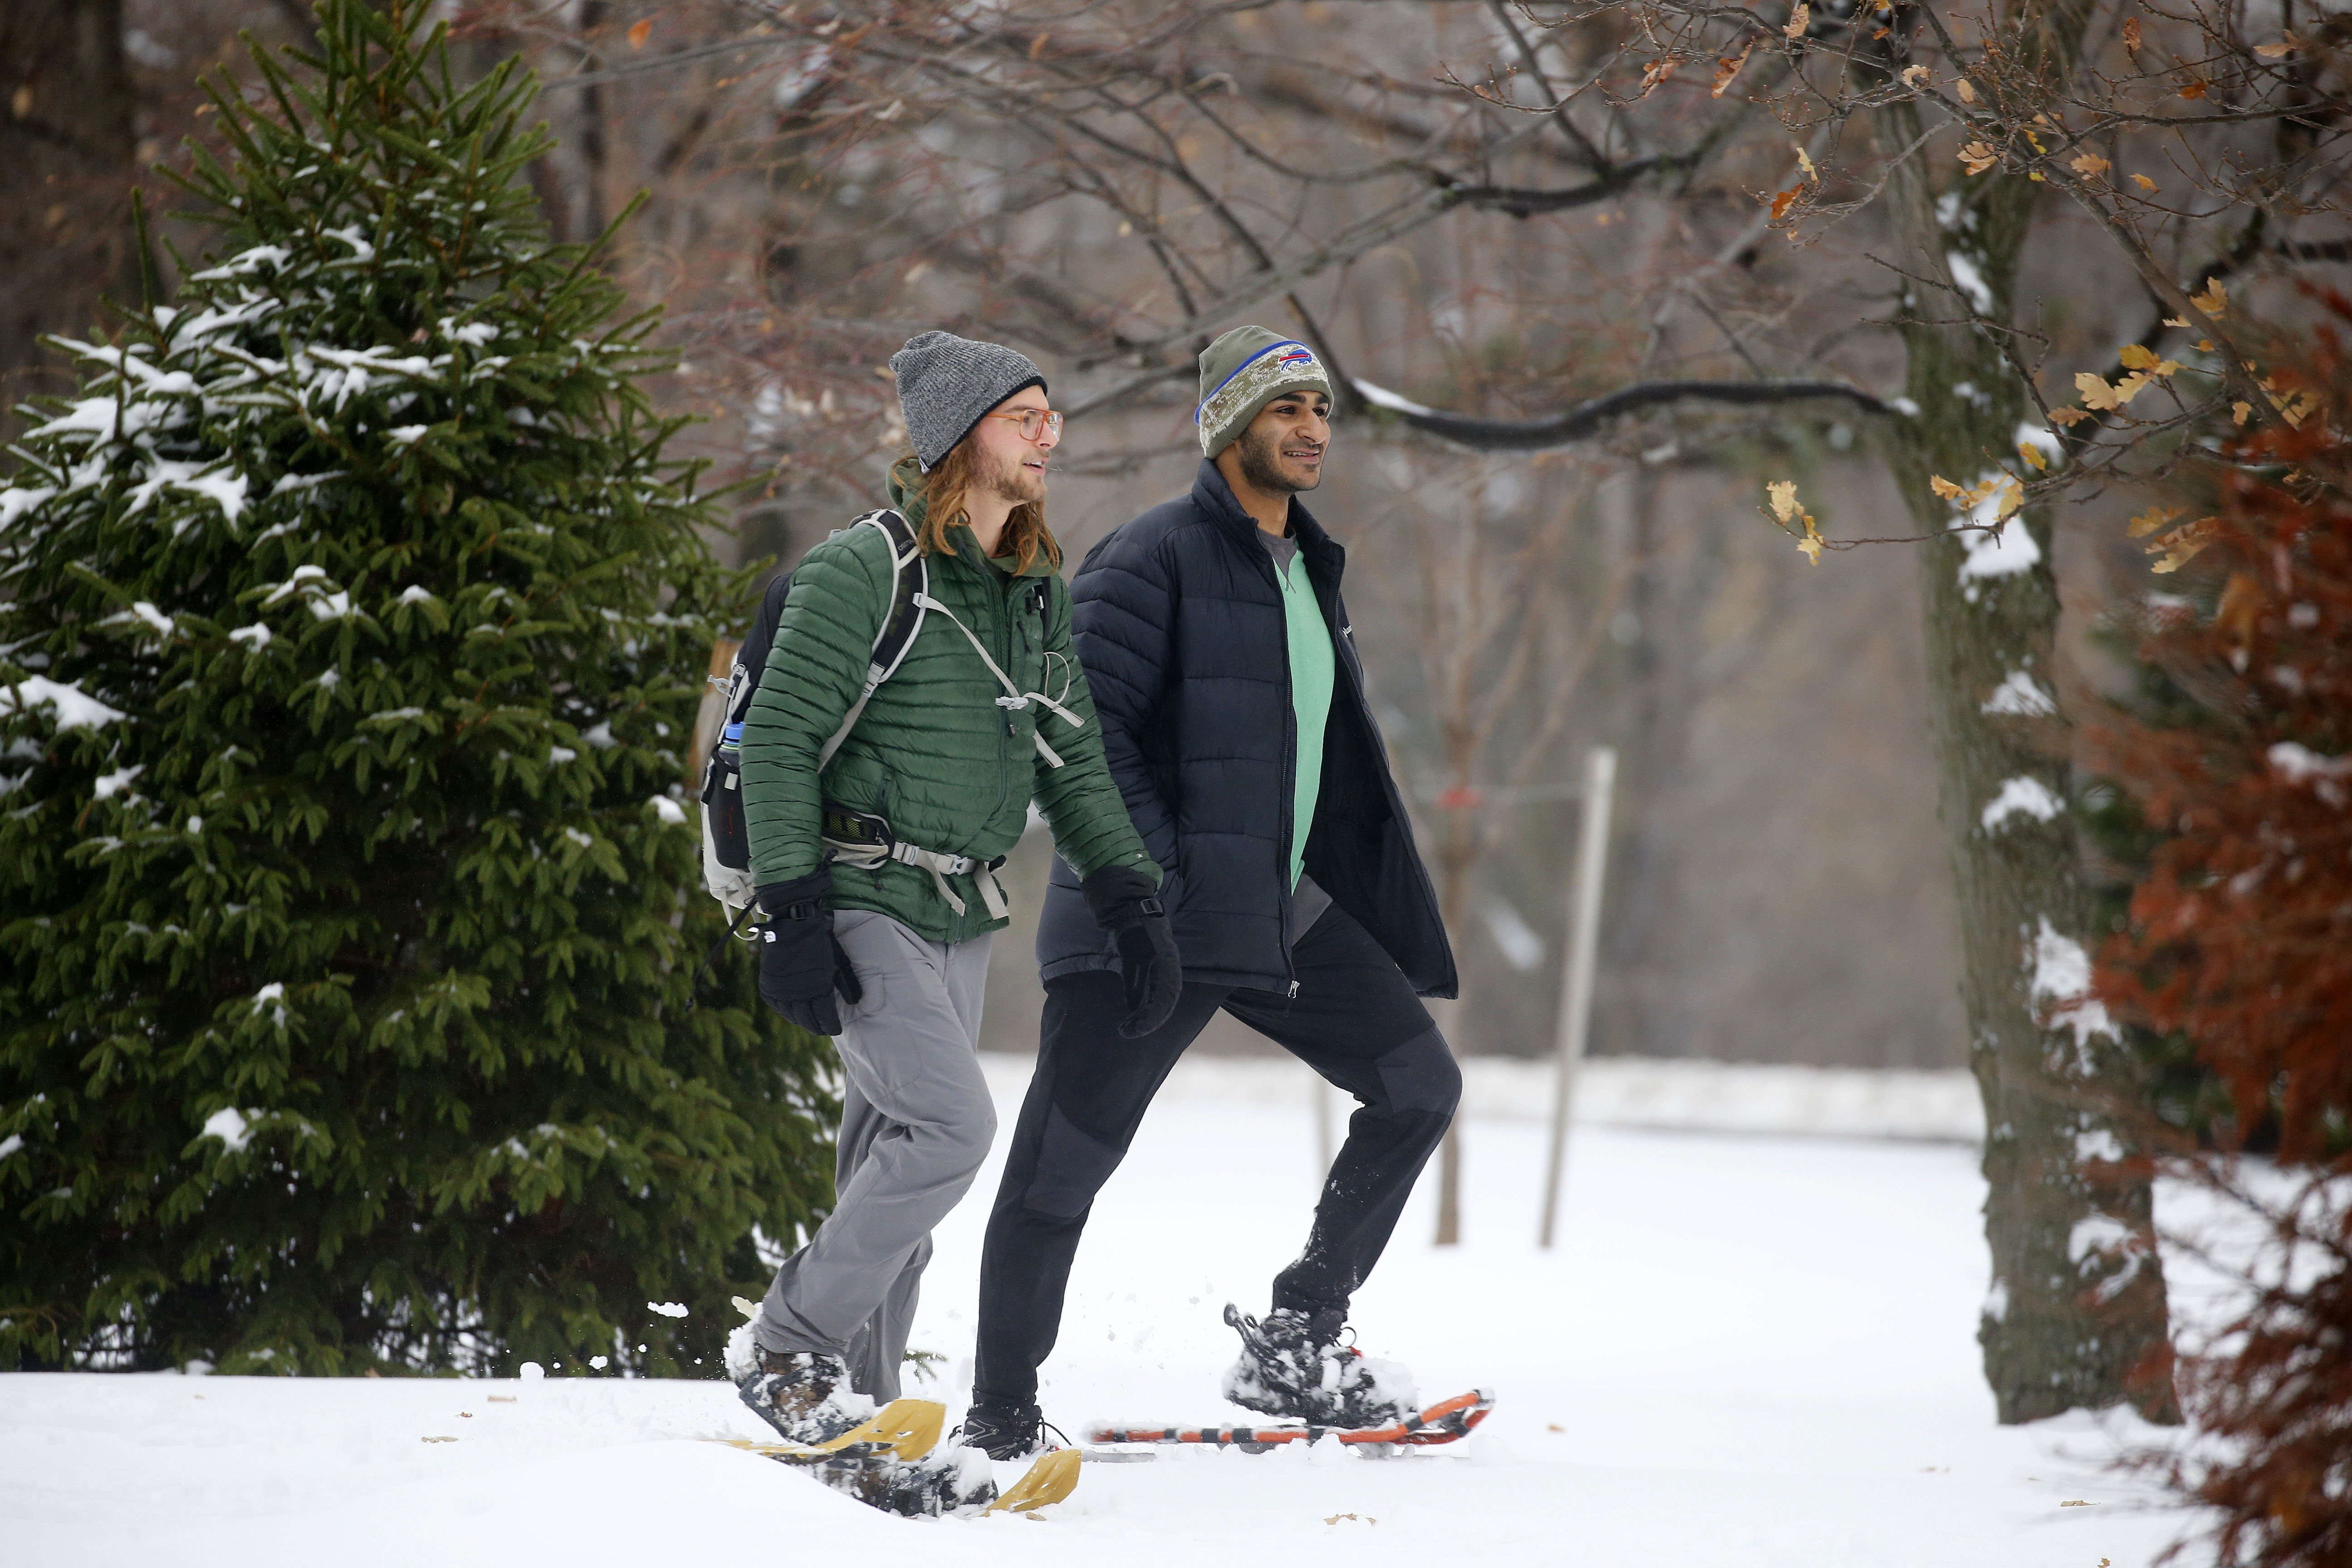 Simon Weinstein, left, and Matthew Asirwatham, right, snowshoe through Delaware Park in Buffalo on Saturday, Dec. 17, 2016.  (Mark Mulville/Buffalo News)